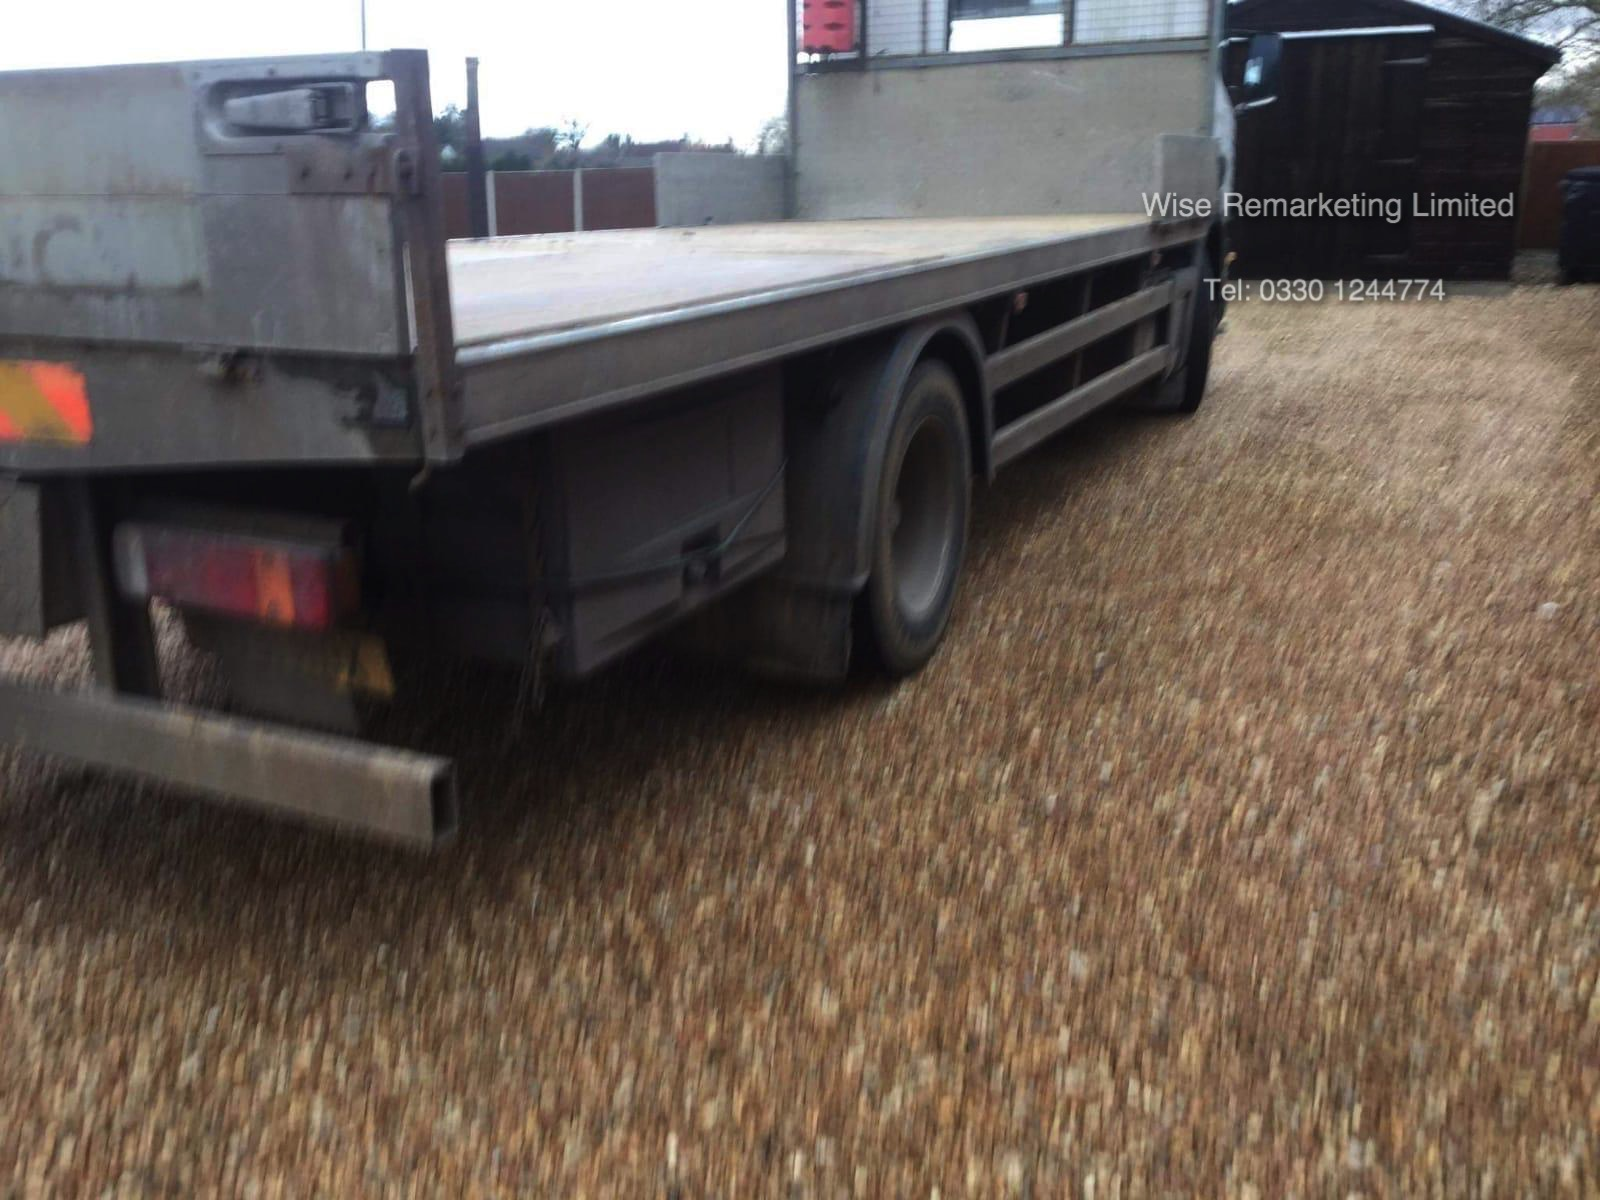 (Reserve Met) Scania 94d.220 18 Tonne 4x2 Flat Bed Lorry - W Reg 2000 Year - SAVE 20% NO VAT - Image 3 of 30